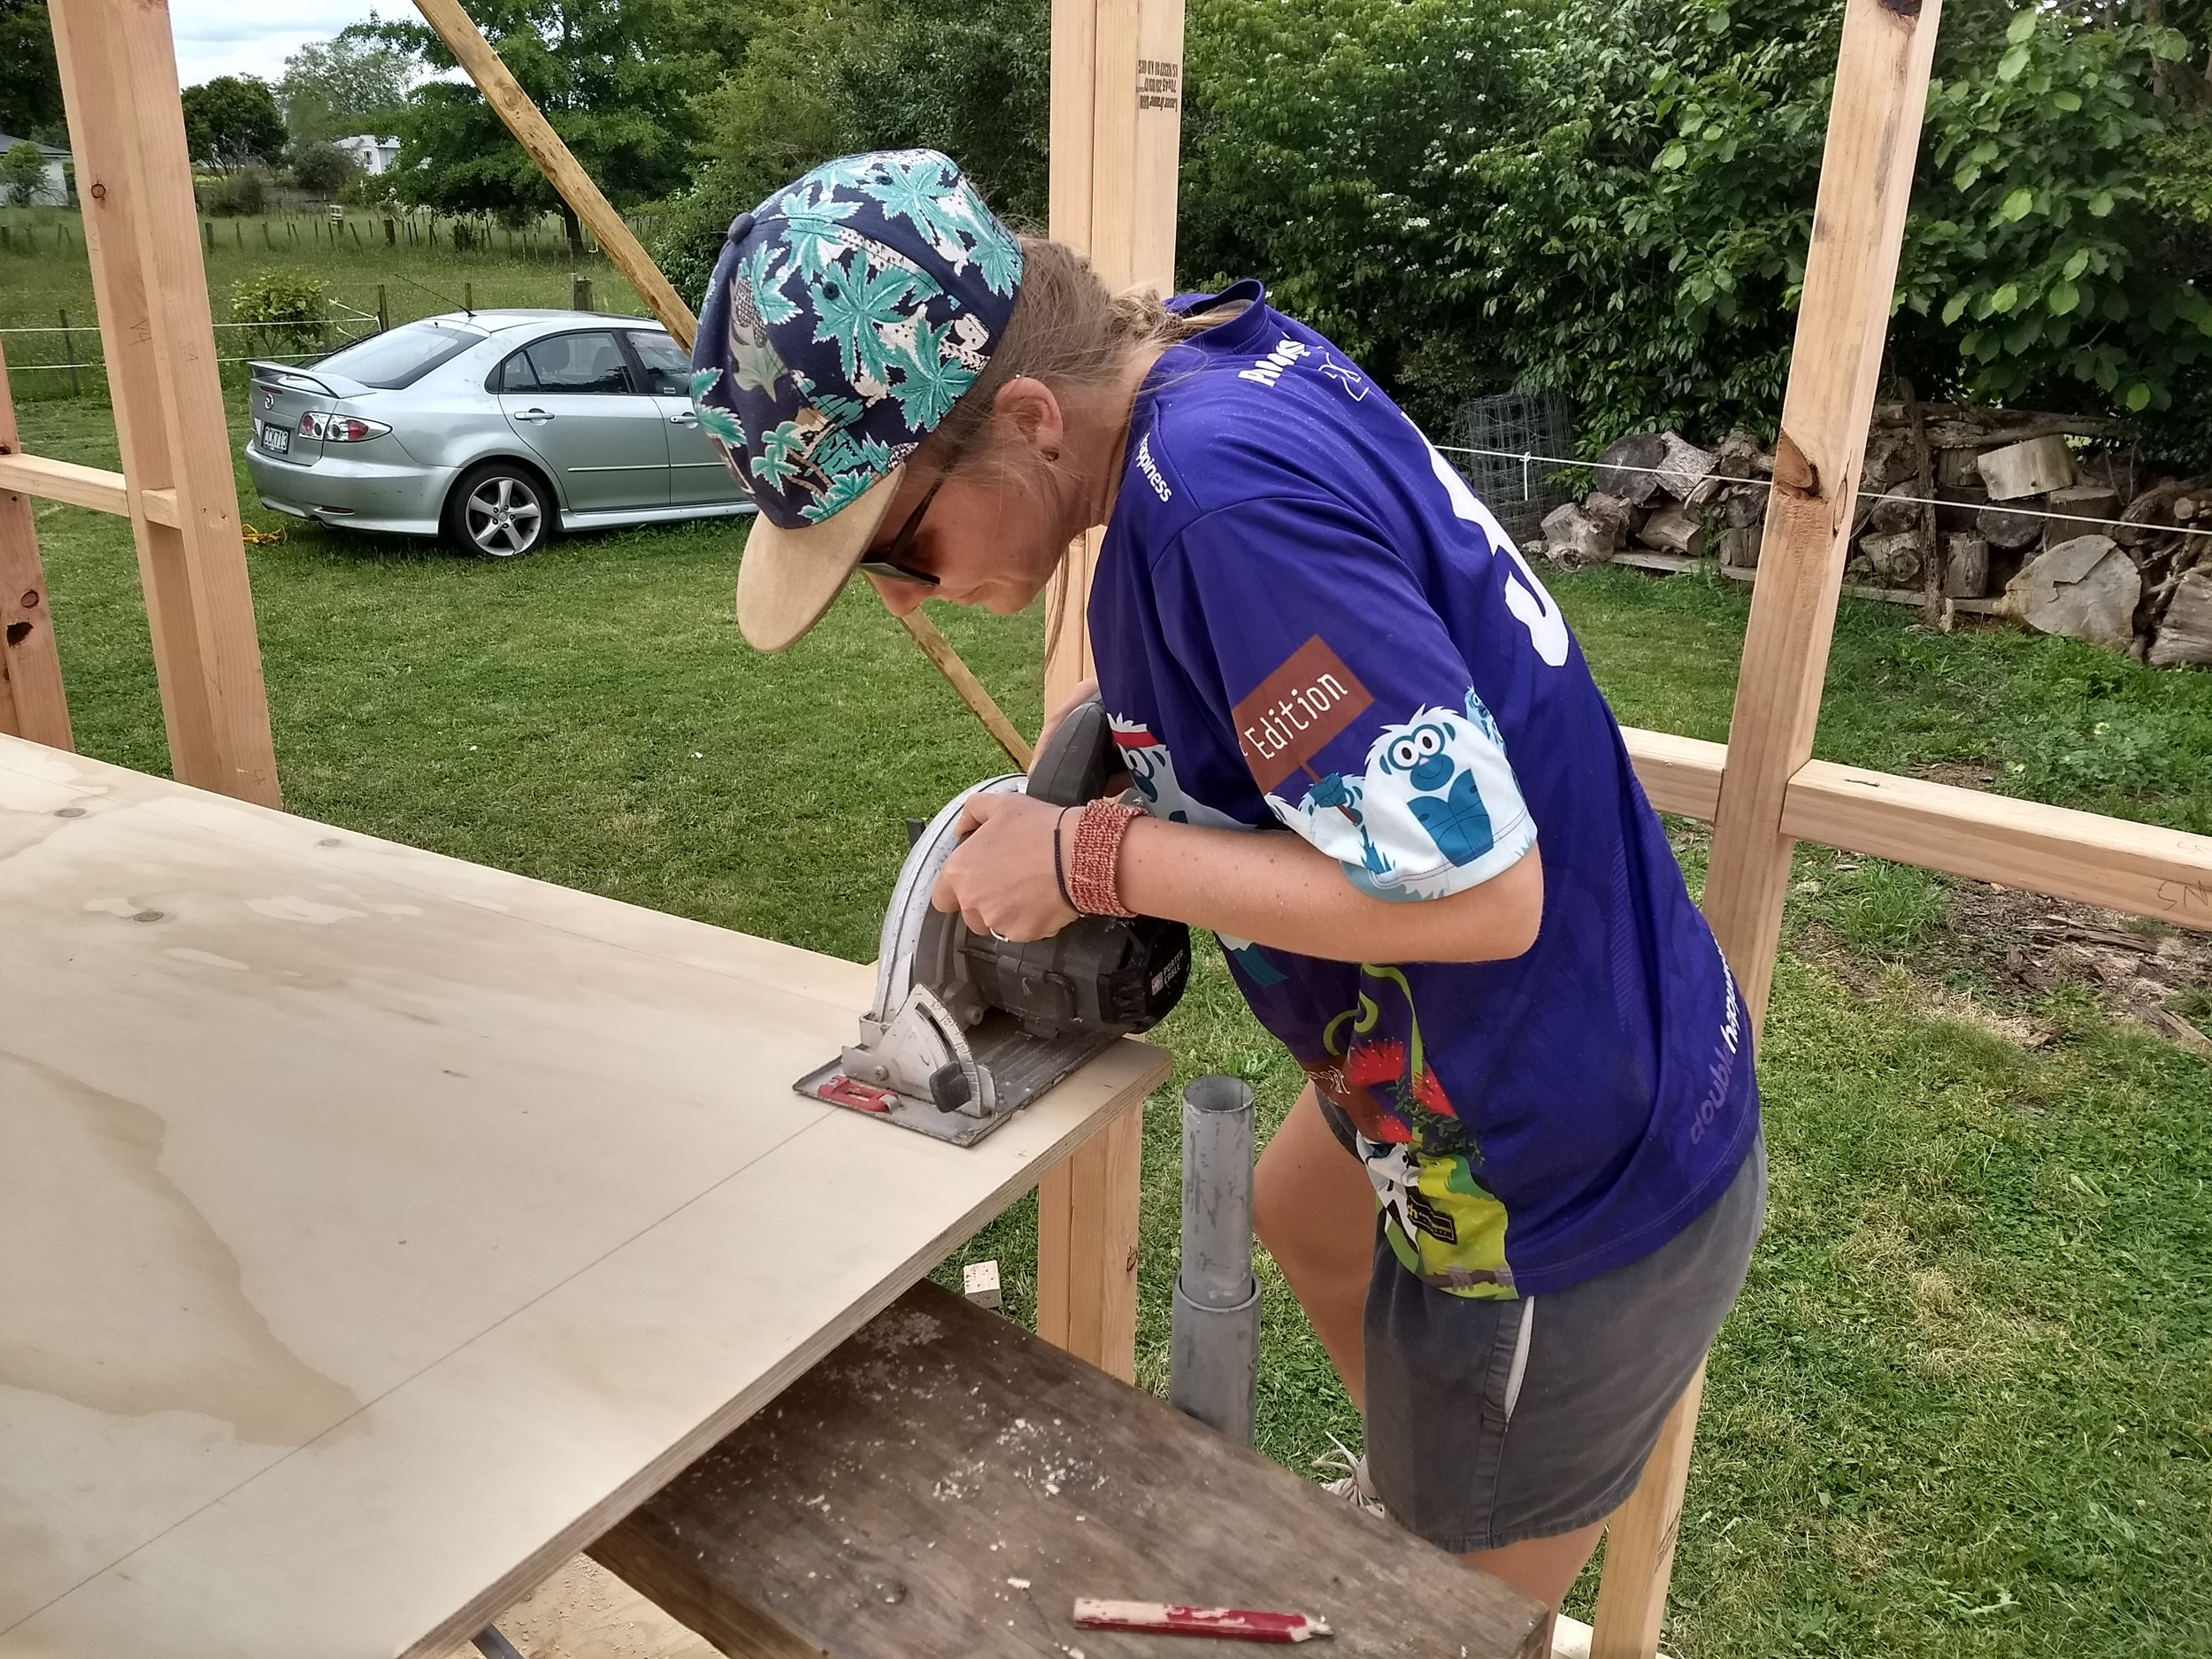 ... and the skillsaw!